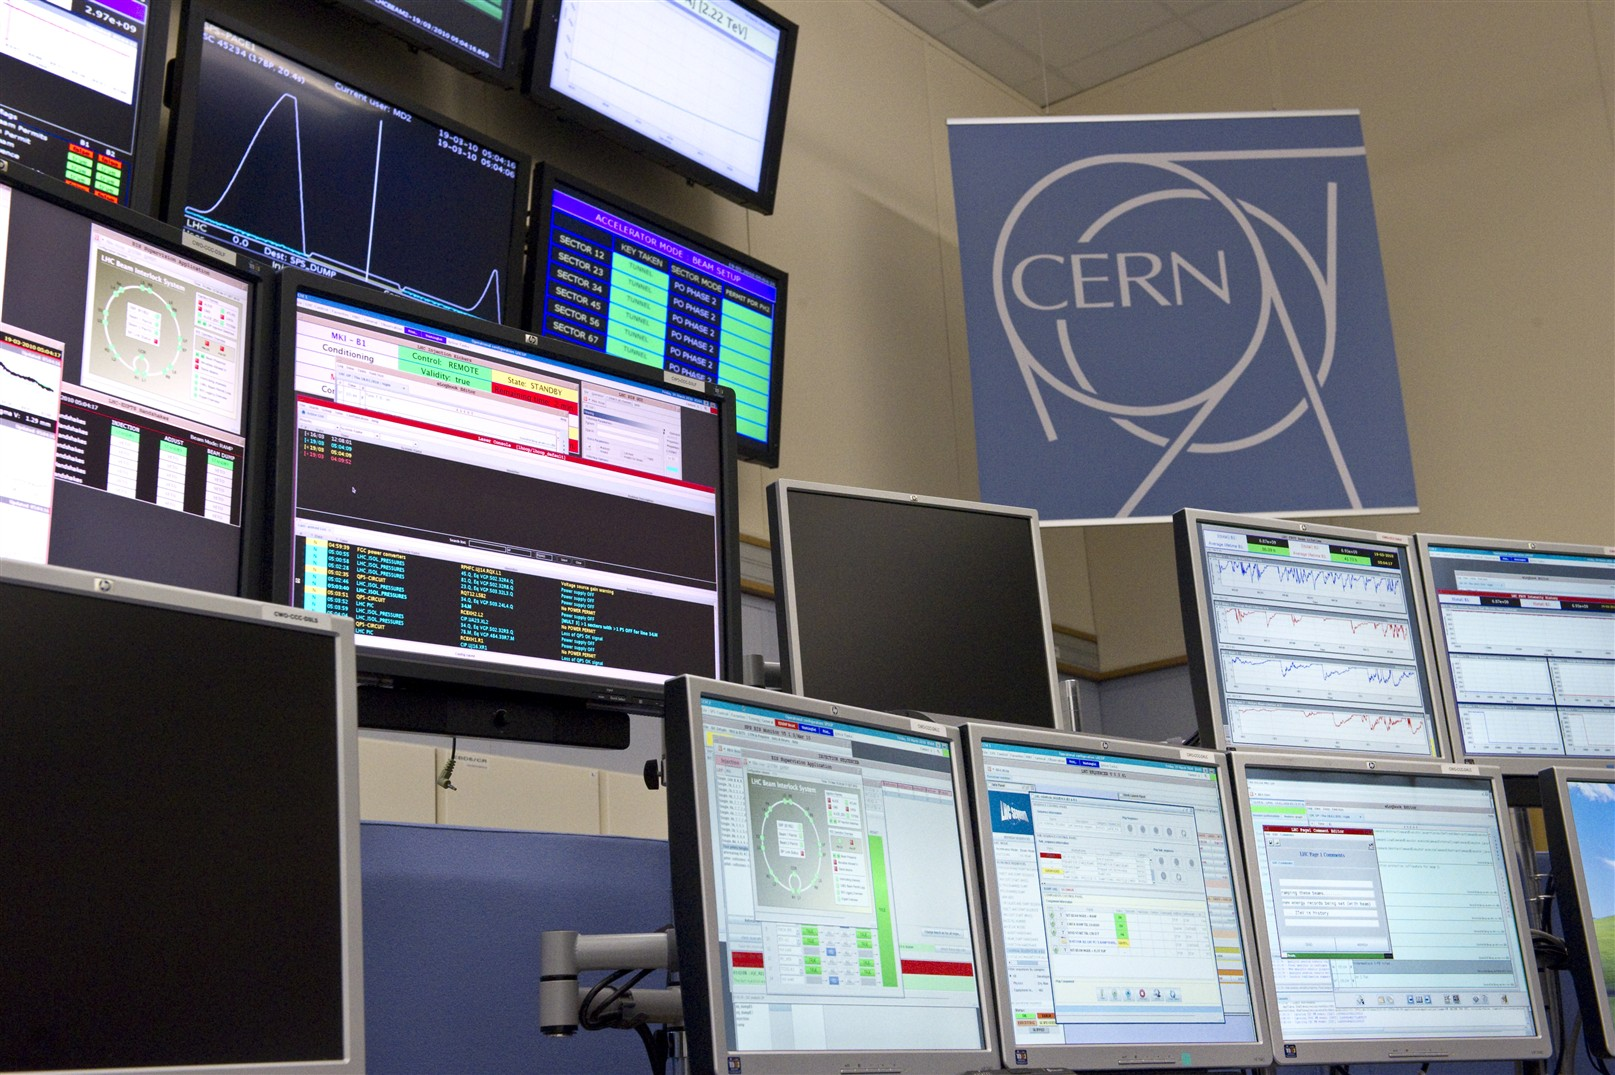 On 19 March, energy record for the LHC, twin beams at 3.48 TeV.